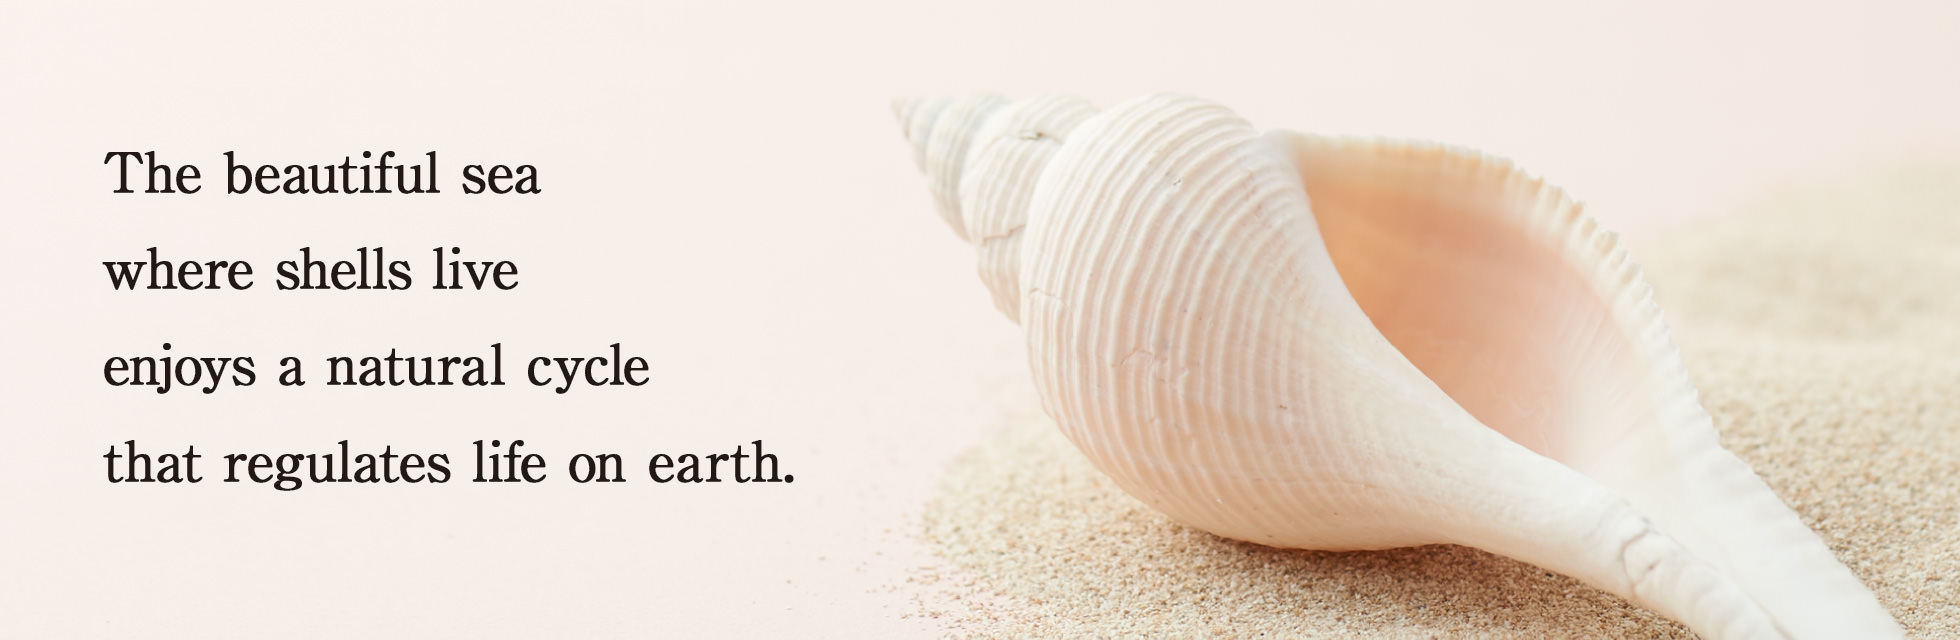 The beautiful sea where shells live enjoys a natural cycle that regulates life on earth.